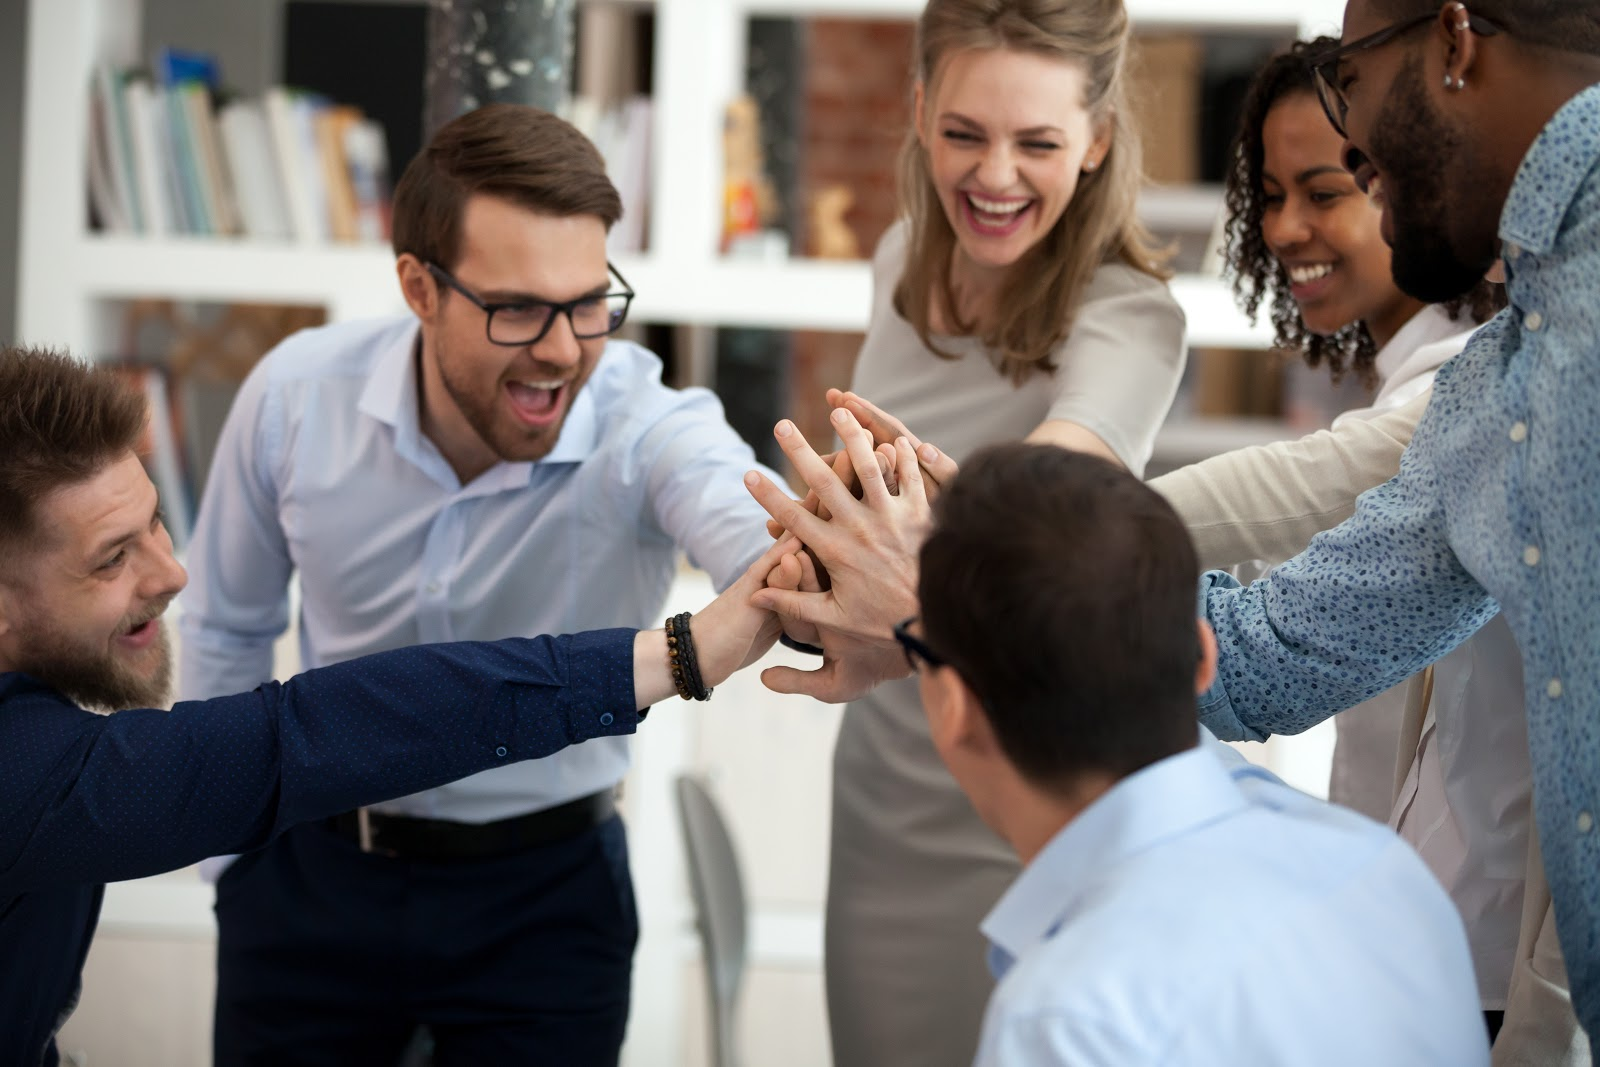 soft skills in the workplace: team cheering